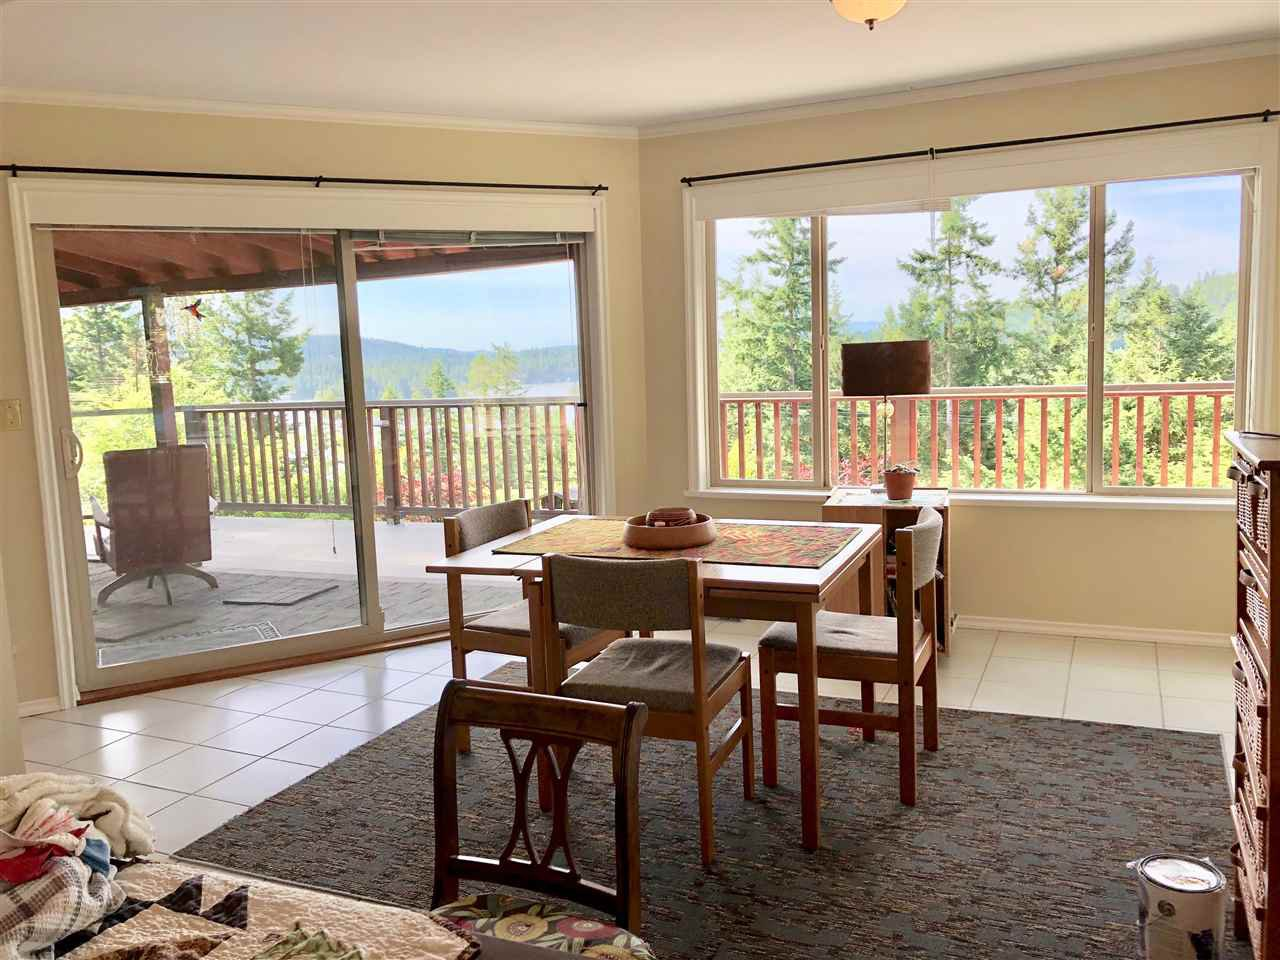 Photo 8: Photos: 4743 HOTEL LAKE Road in Garden Bay: Pender Harbour Egmont House for sale (Sunshine Coast)  : MLS®# R2424554